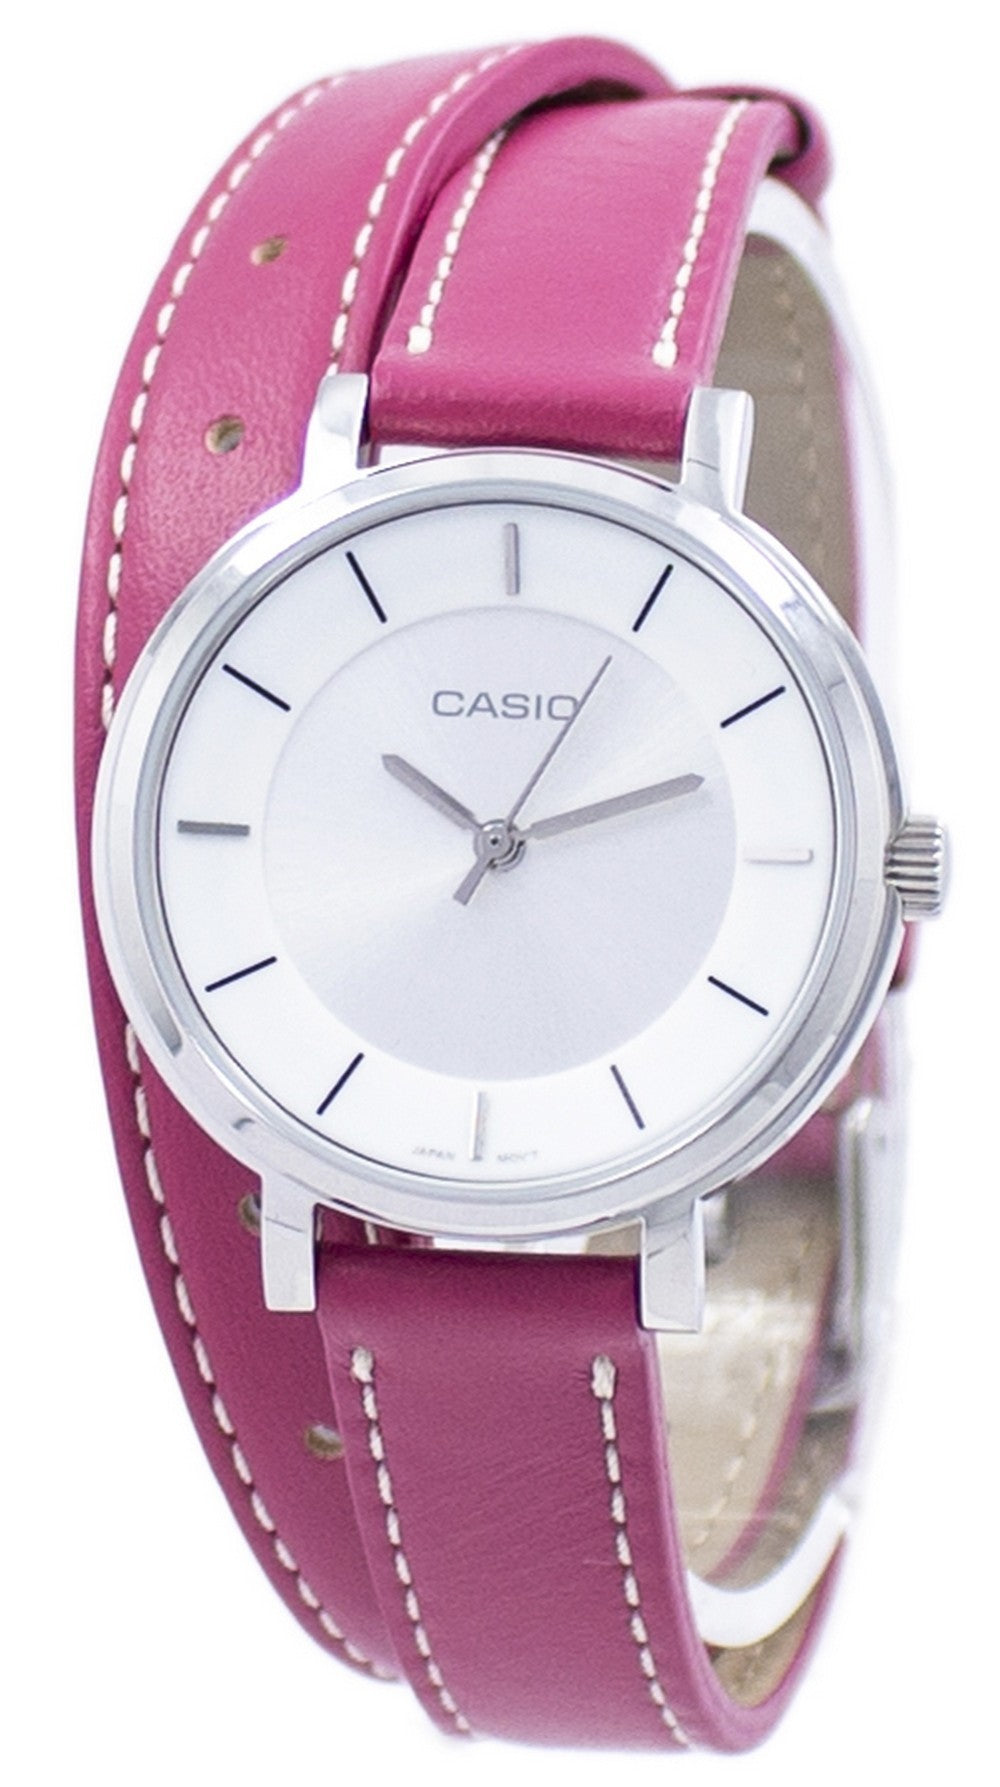 Casio Analog Quartz Double Loop LTP-E143DBL-4A1 LTPE143DBL-4A1 Women's Watch